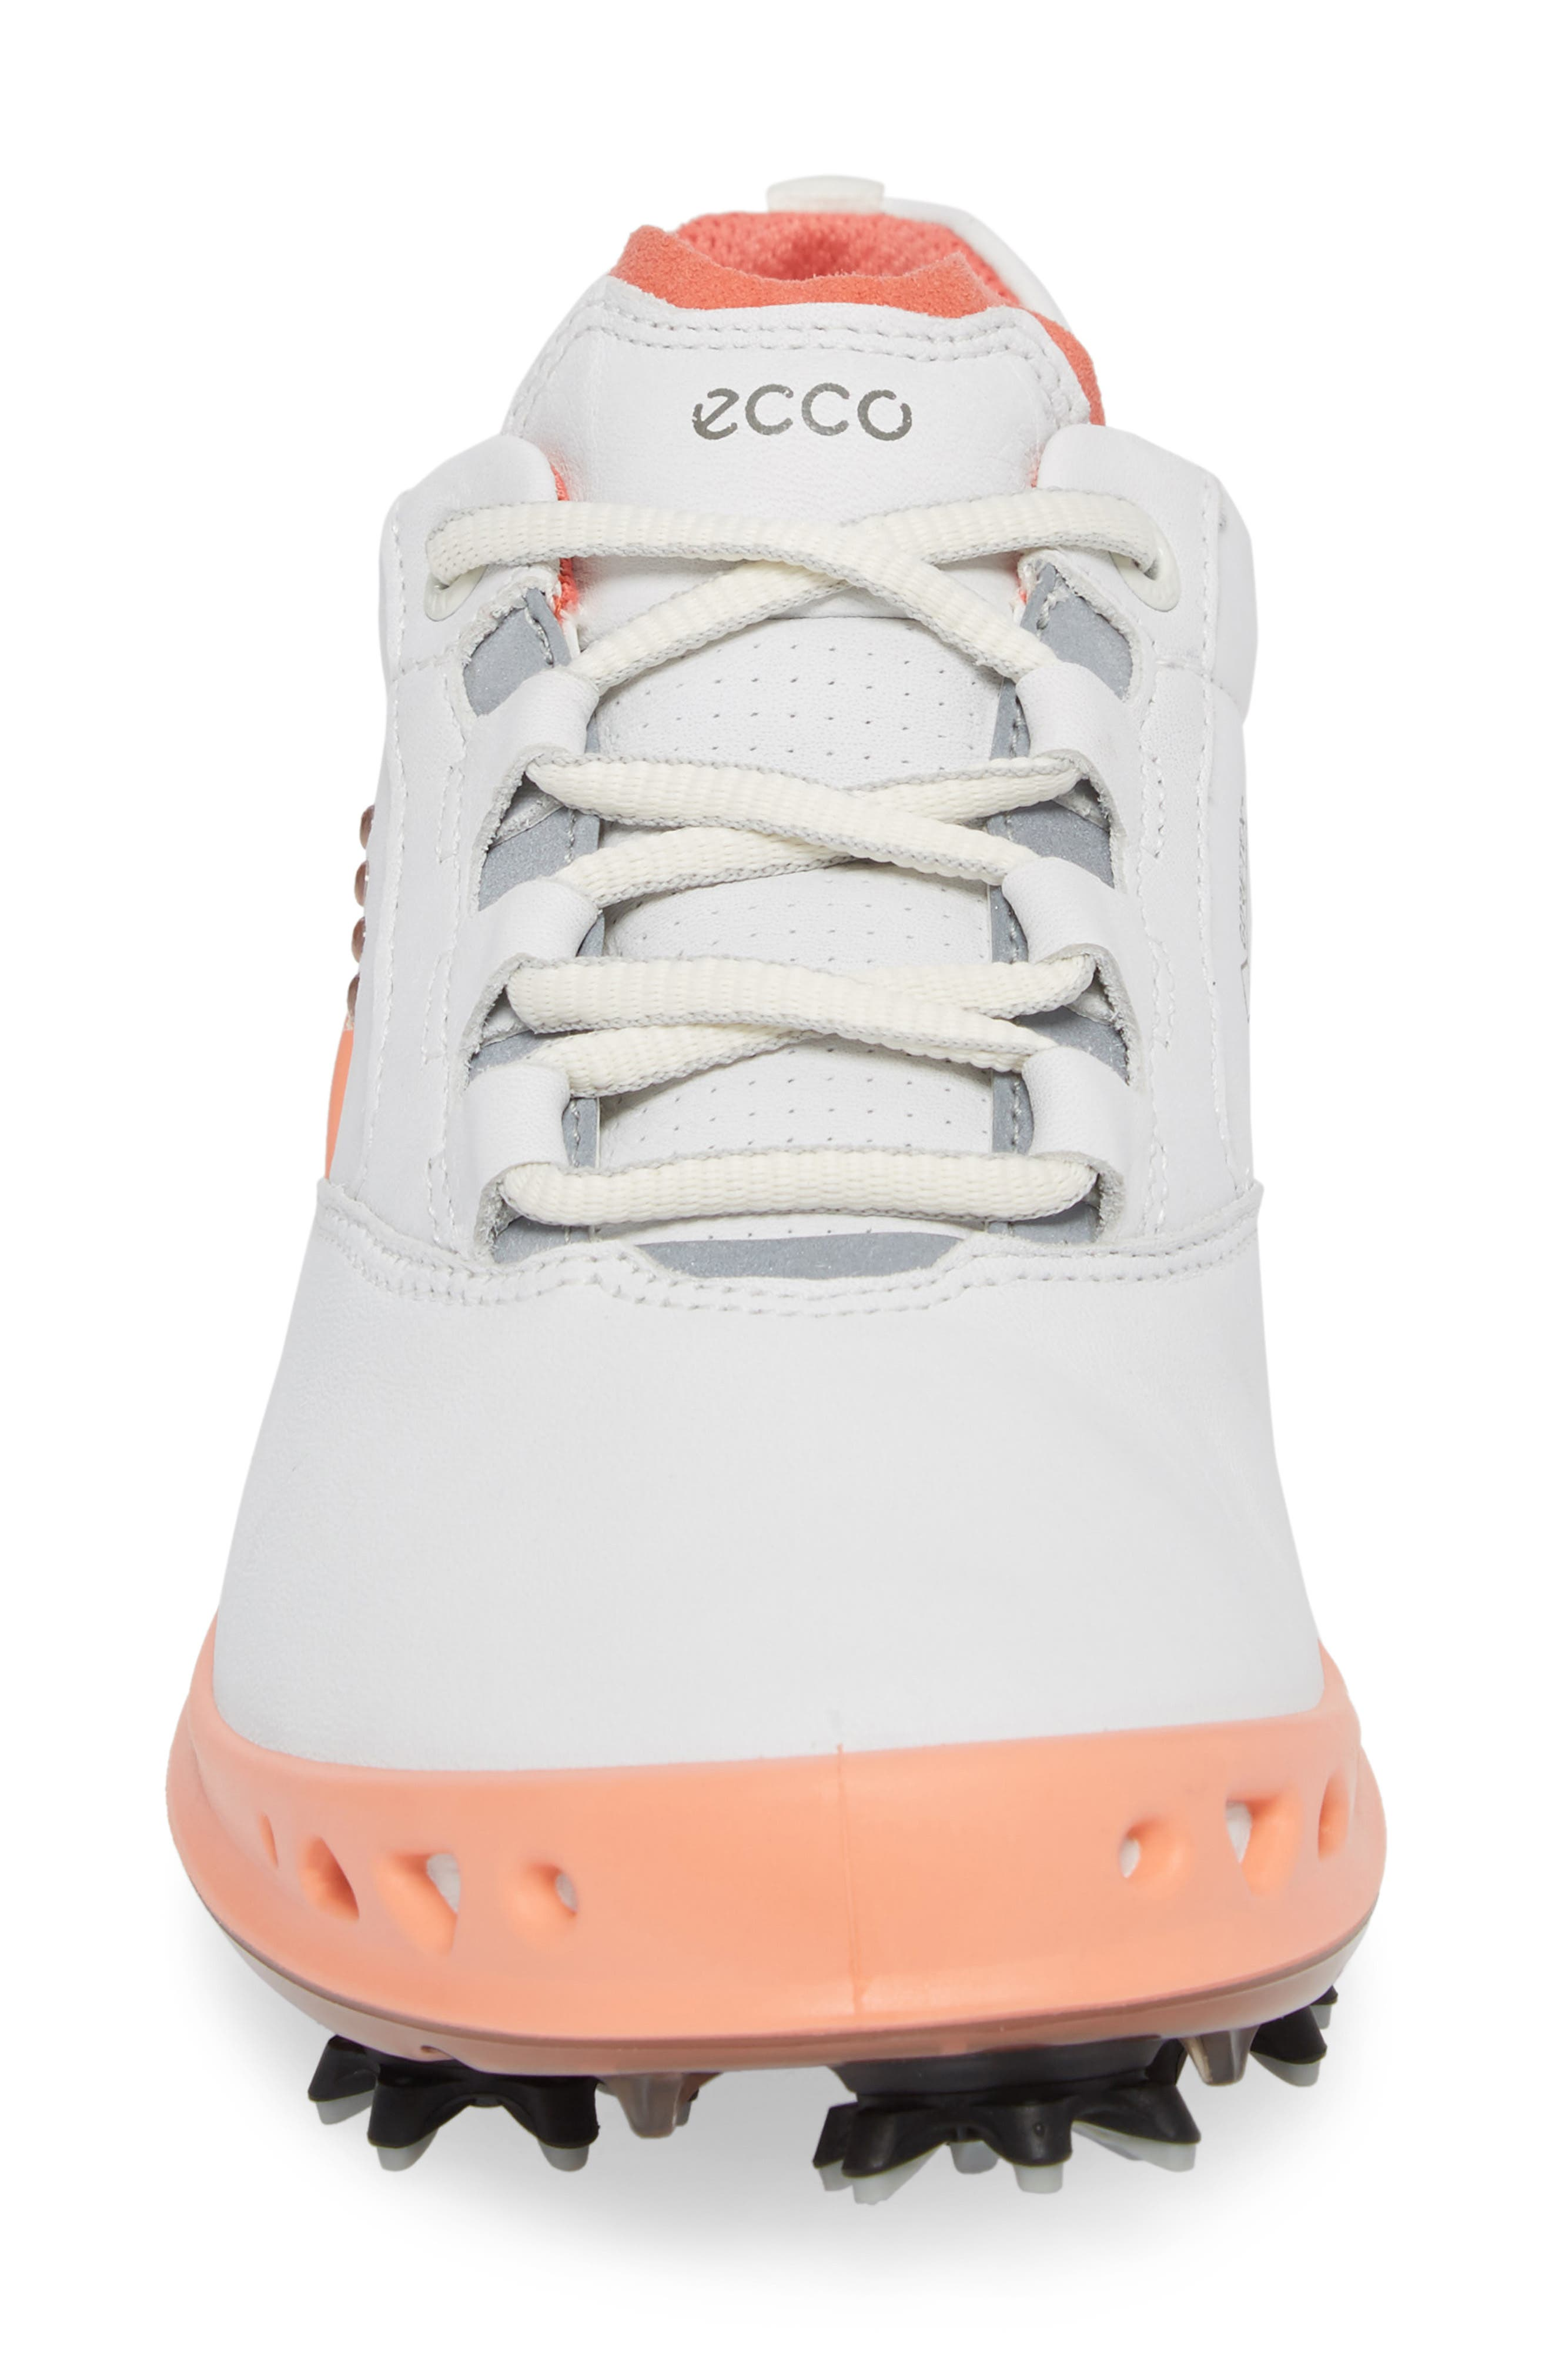 Cage Gore-Tex<sup>®</sup> Golf Shoe,                             Alternate thumbnail 4, color,                             White/ Coral Leather